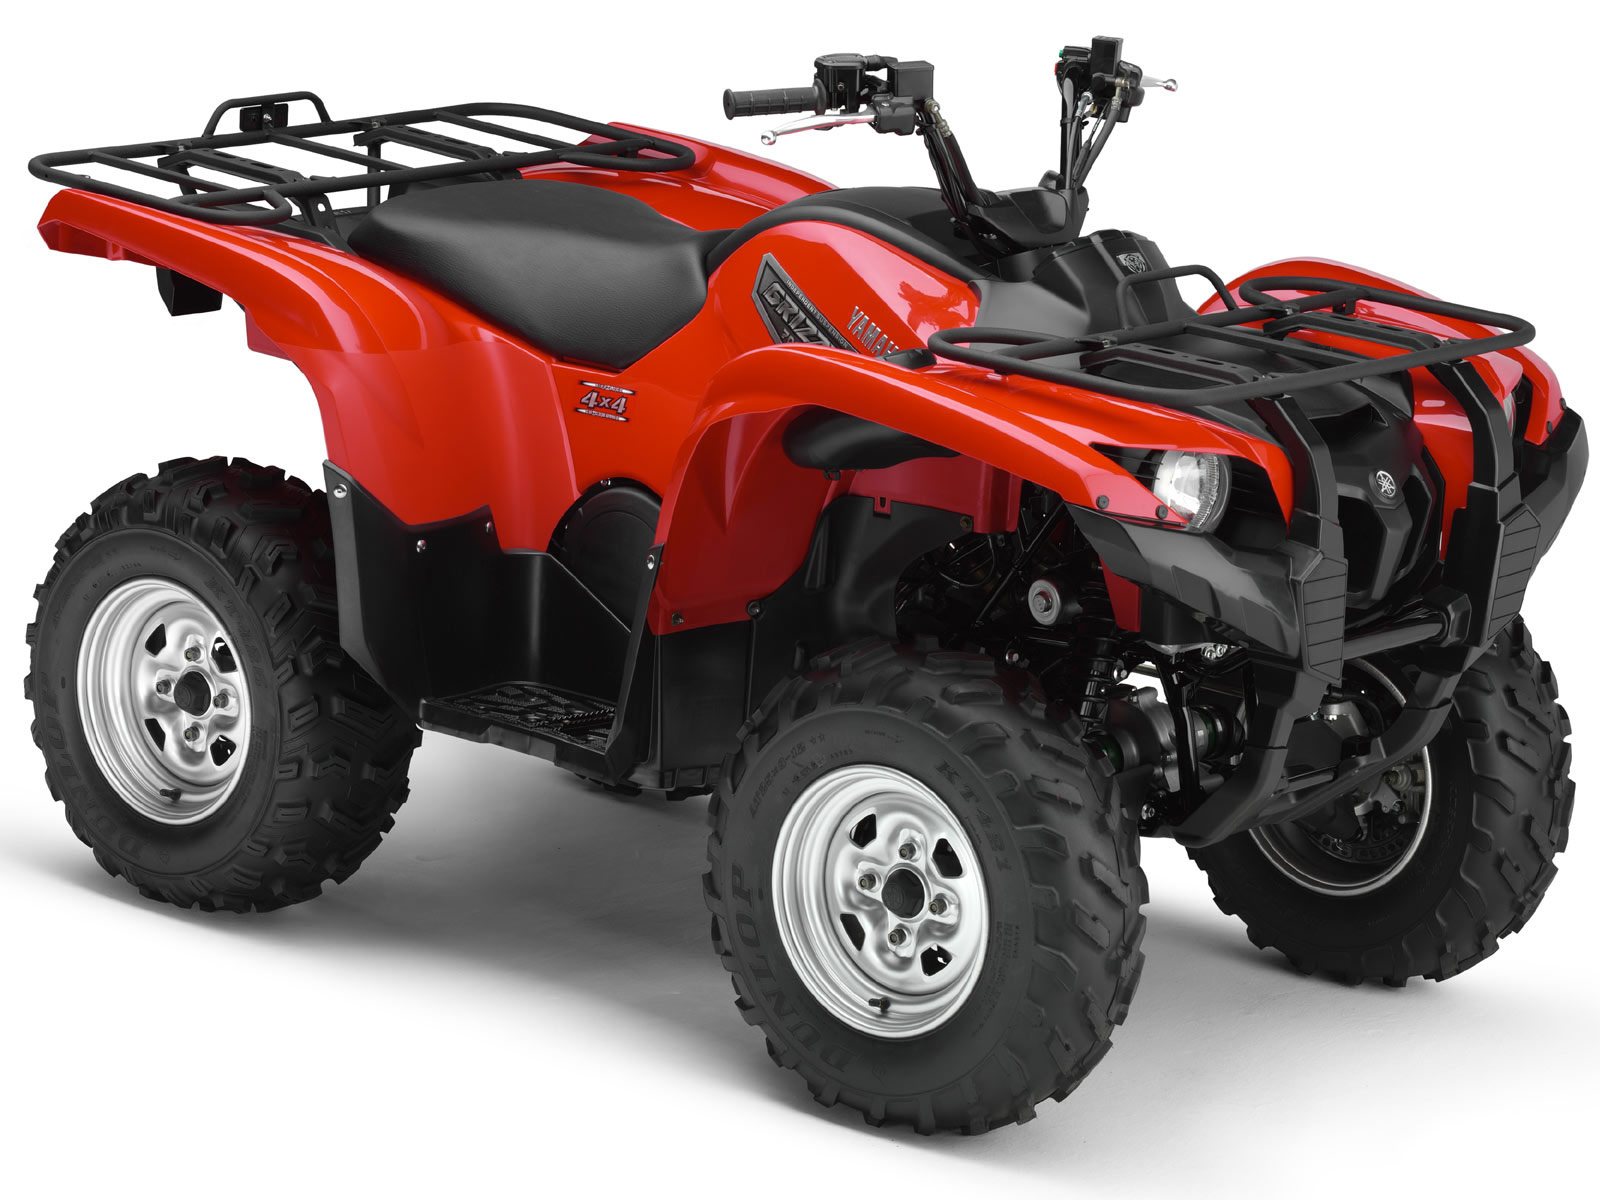 2007 yamaha grizzly 700 fi 4x4 automotic wallpapers for Yamaha grizzly atv